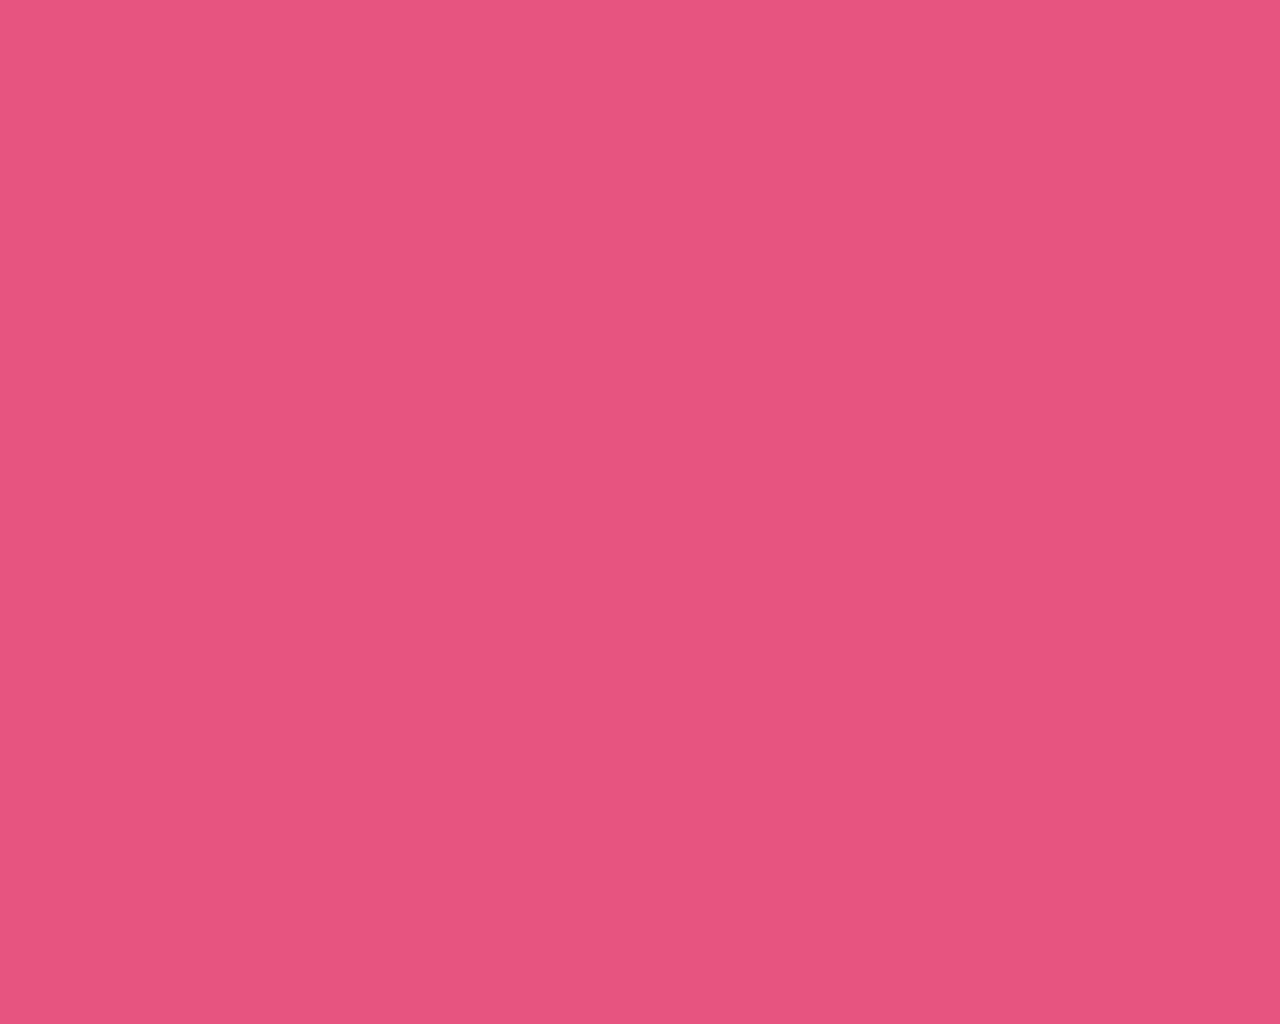 1280x1024 Dark Pink Solid Color Background Solid Color Backgrounds Hex Colors Paint Cleanup